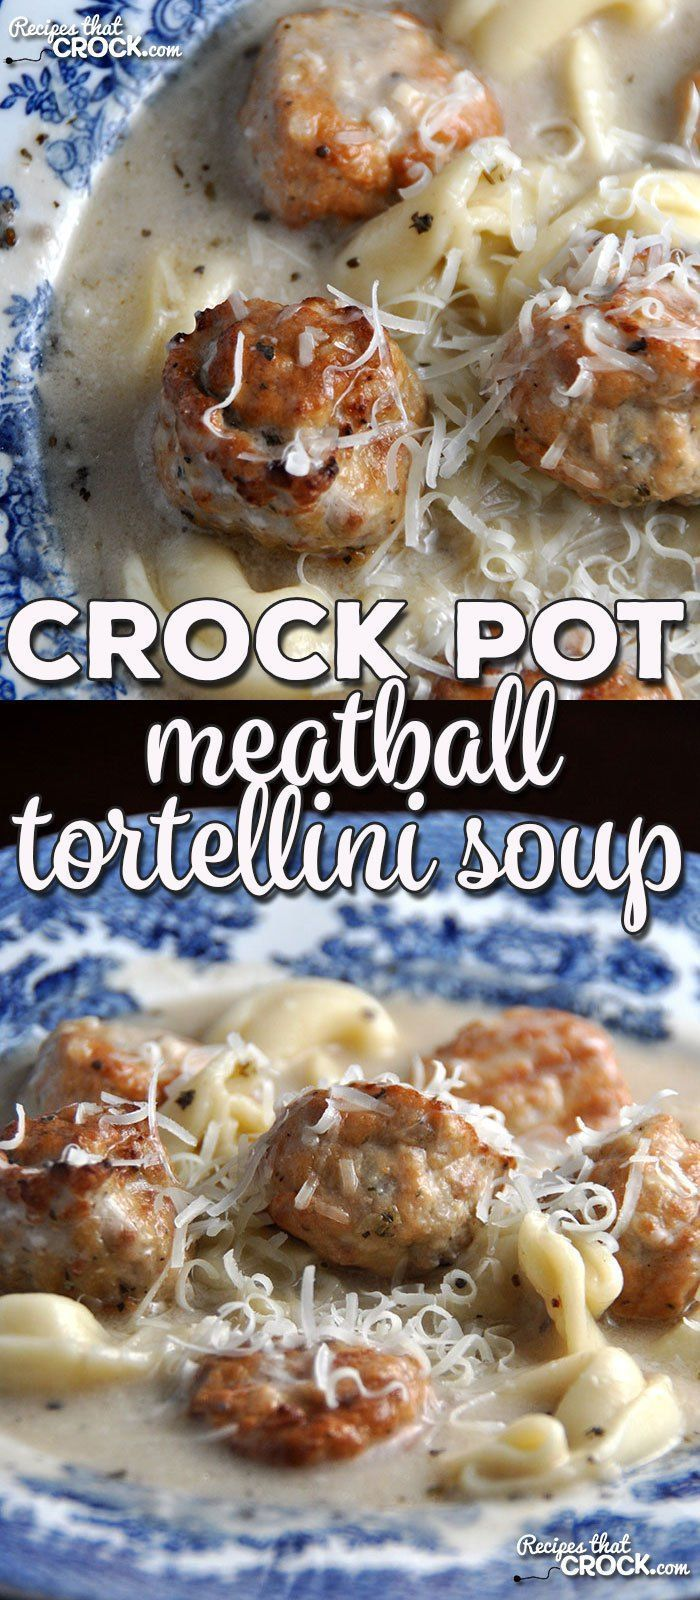 Crock Pot Meatball Tortellini Soup